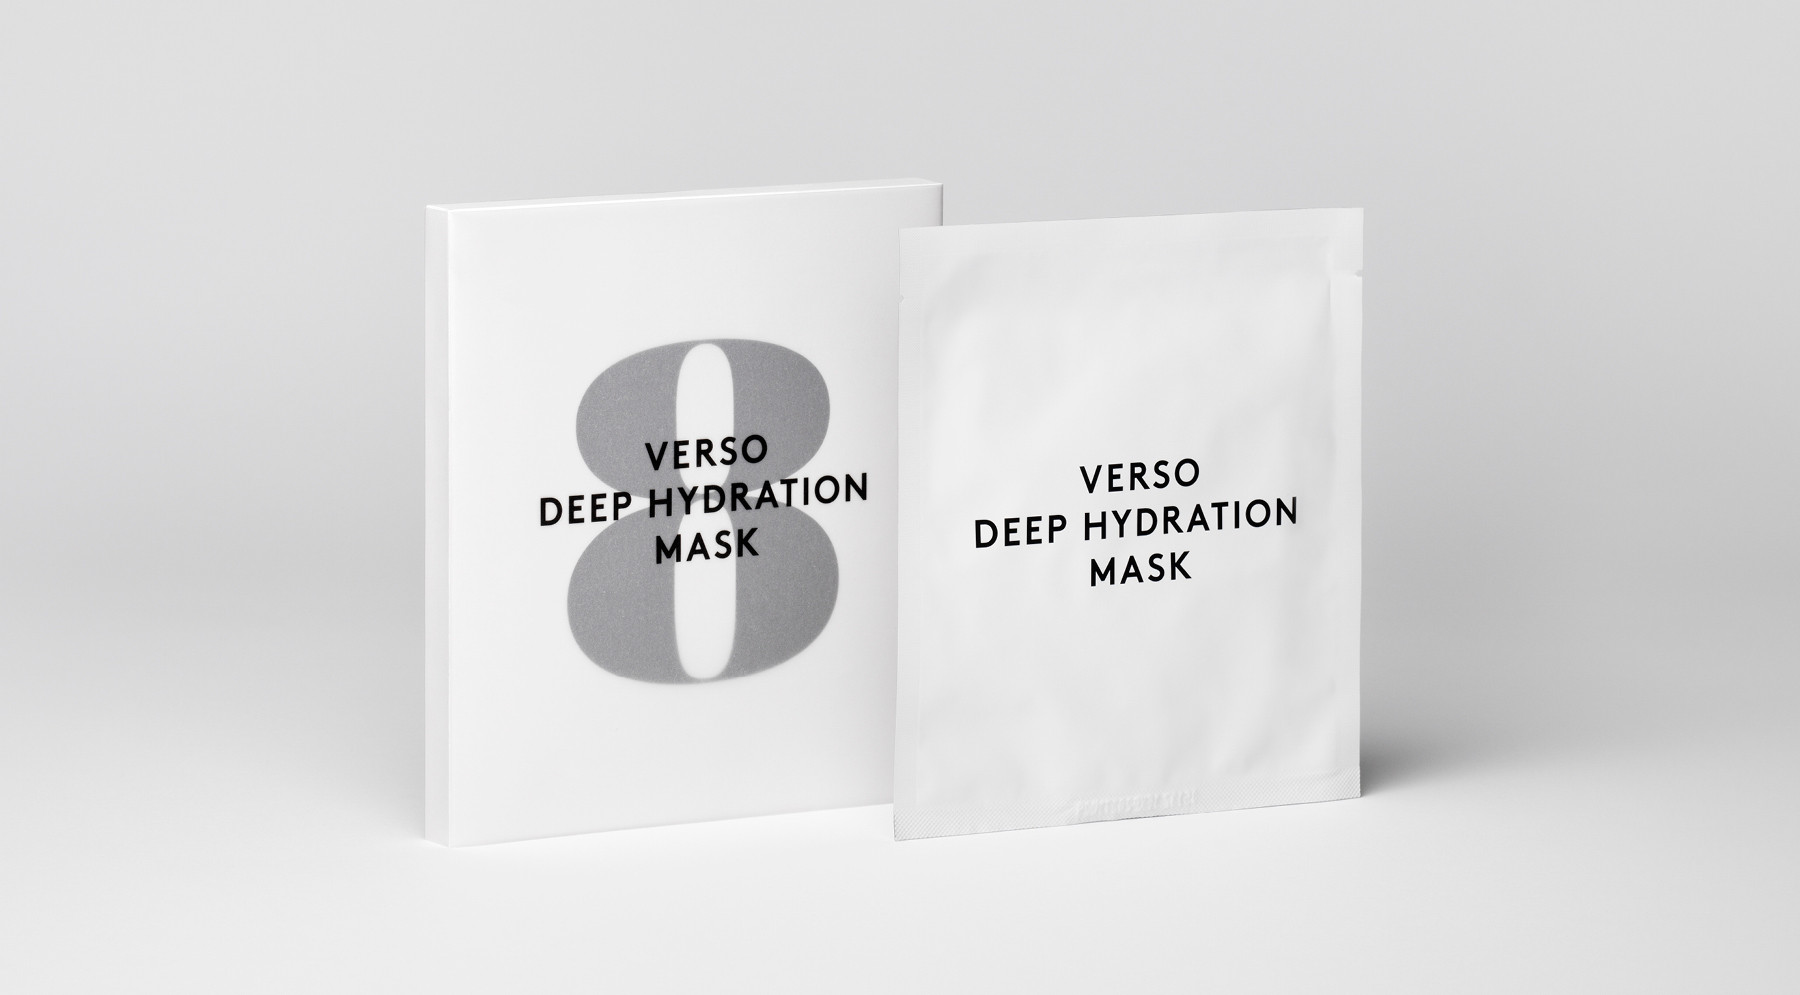 Verso Deep Hydration Mask ($75)